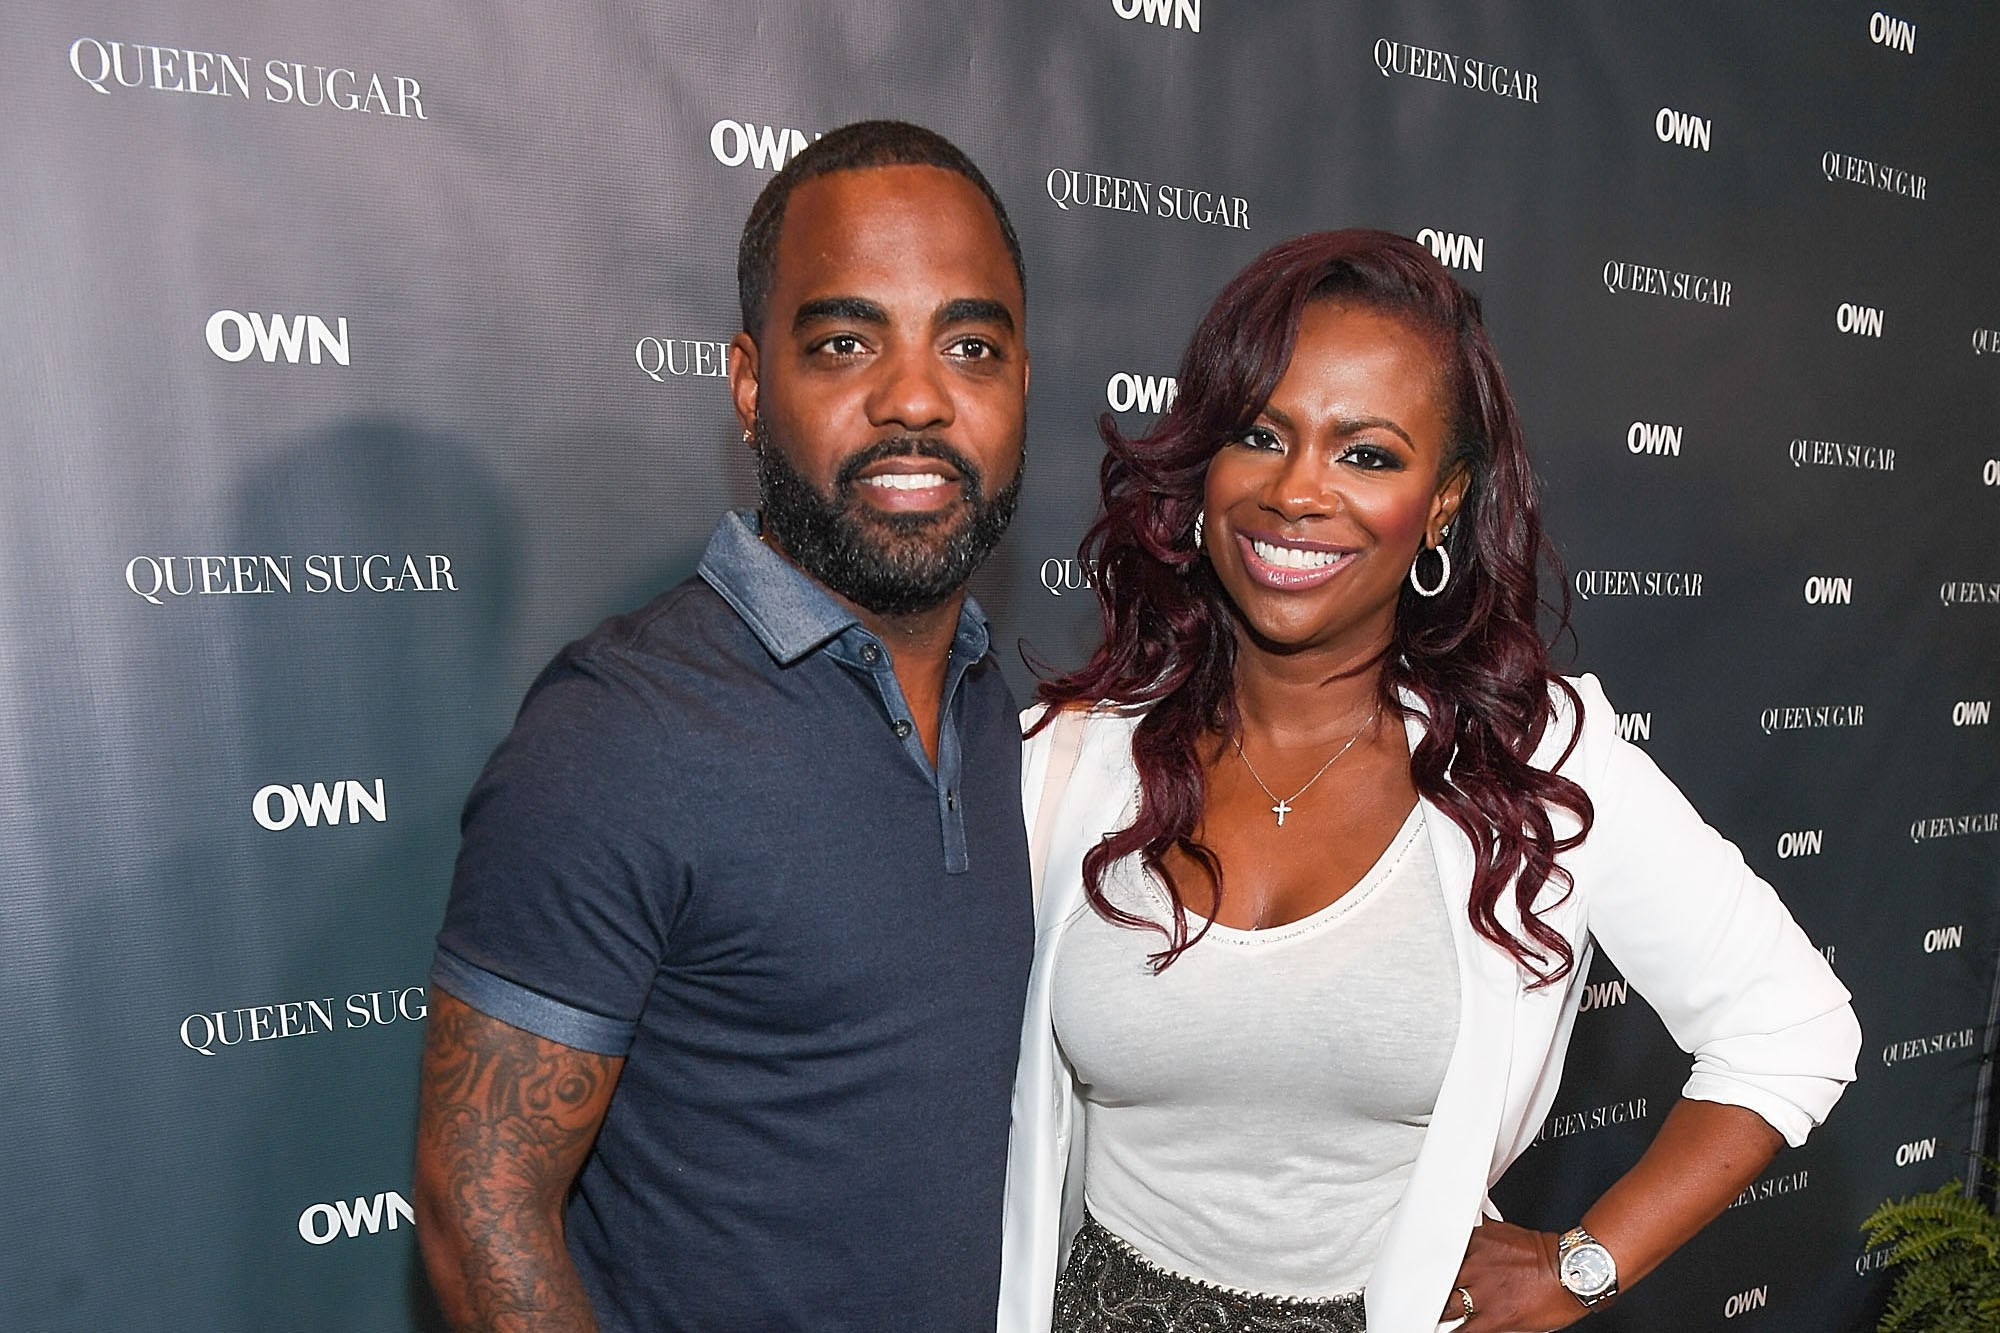 kandi-burruss-hubby-todd-tucker-prepared-the-best-gift-for-her-birthday-check-out-his-surprise-here-in-the-video